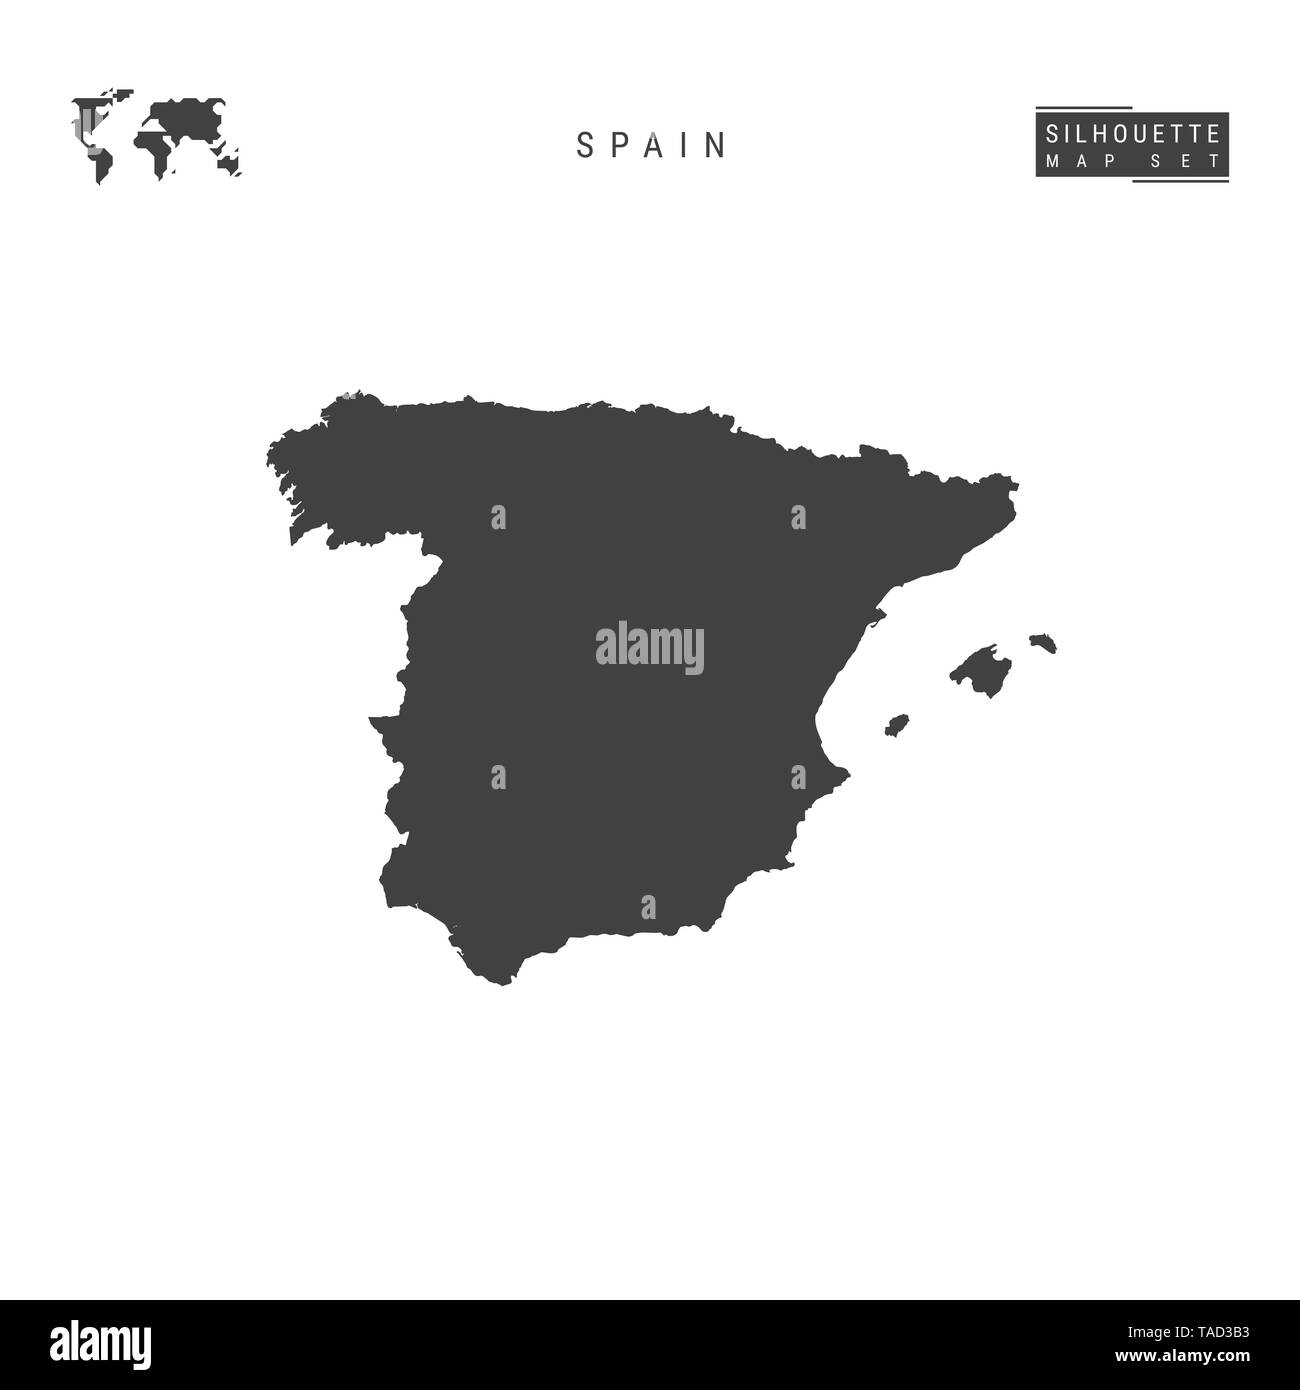 Map Of Spain Blank.Spain Blank Map Isolated On White Background High Detailed Black